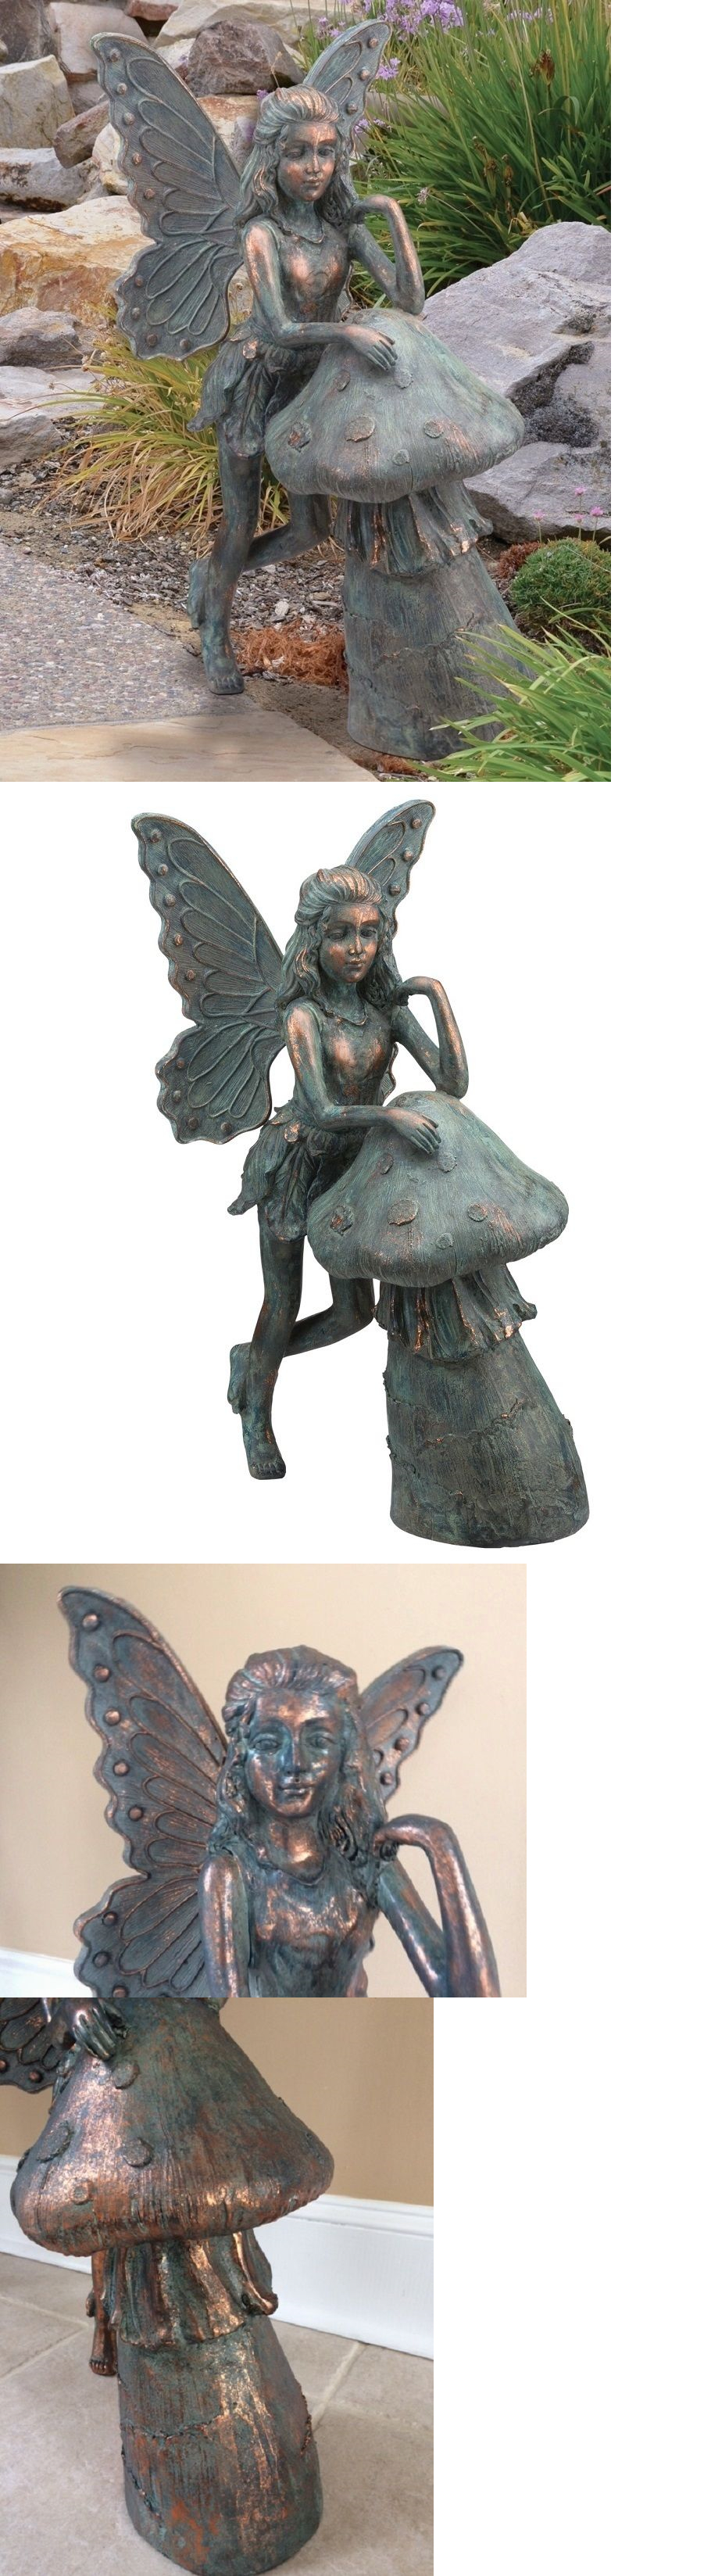 Garden decor statues  Statues and Lawn Ornaments  Resting Fairy And Mushroom Garden